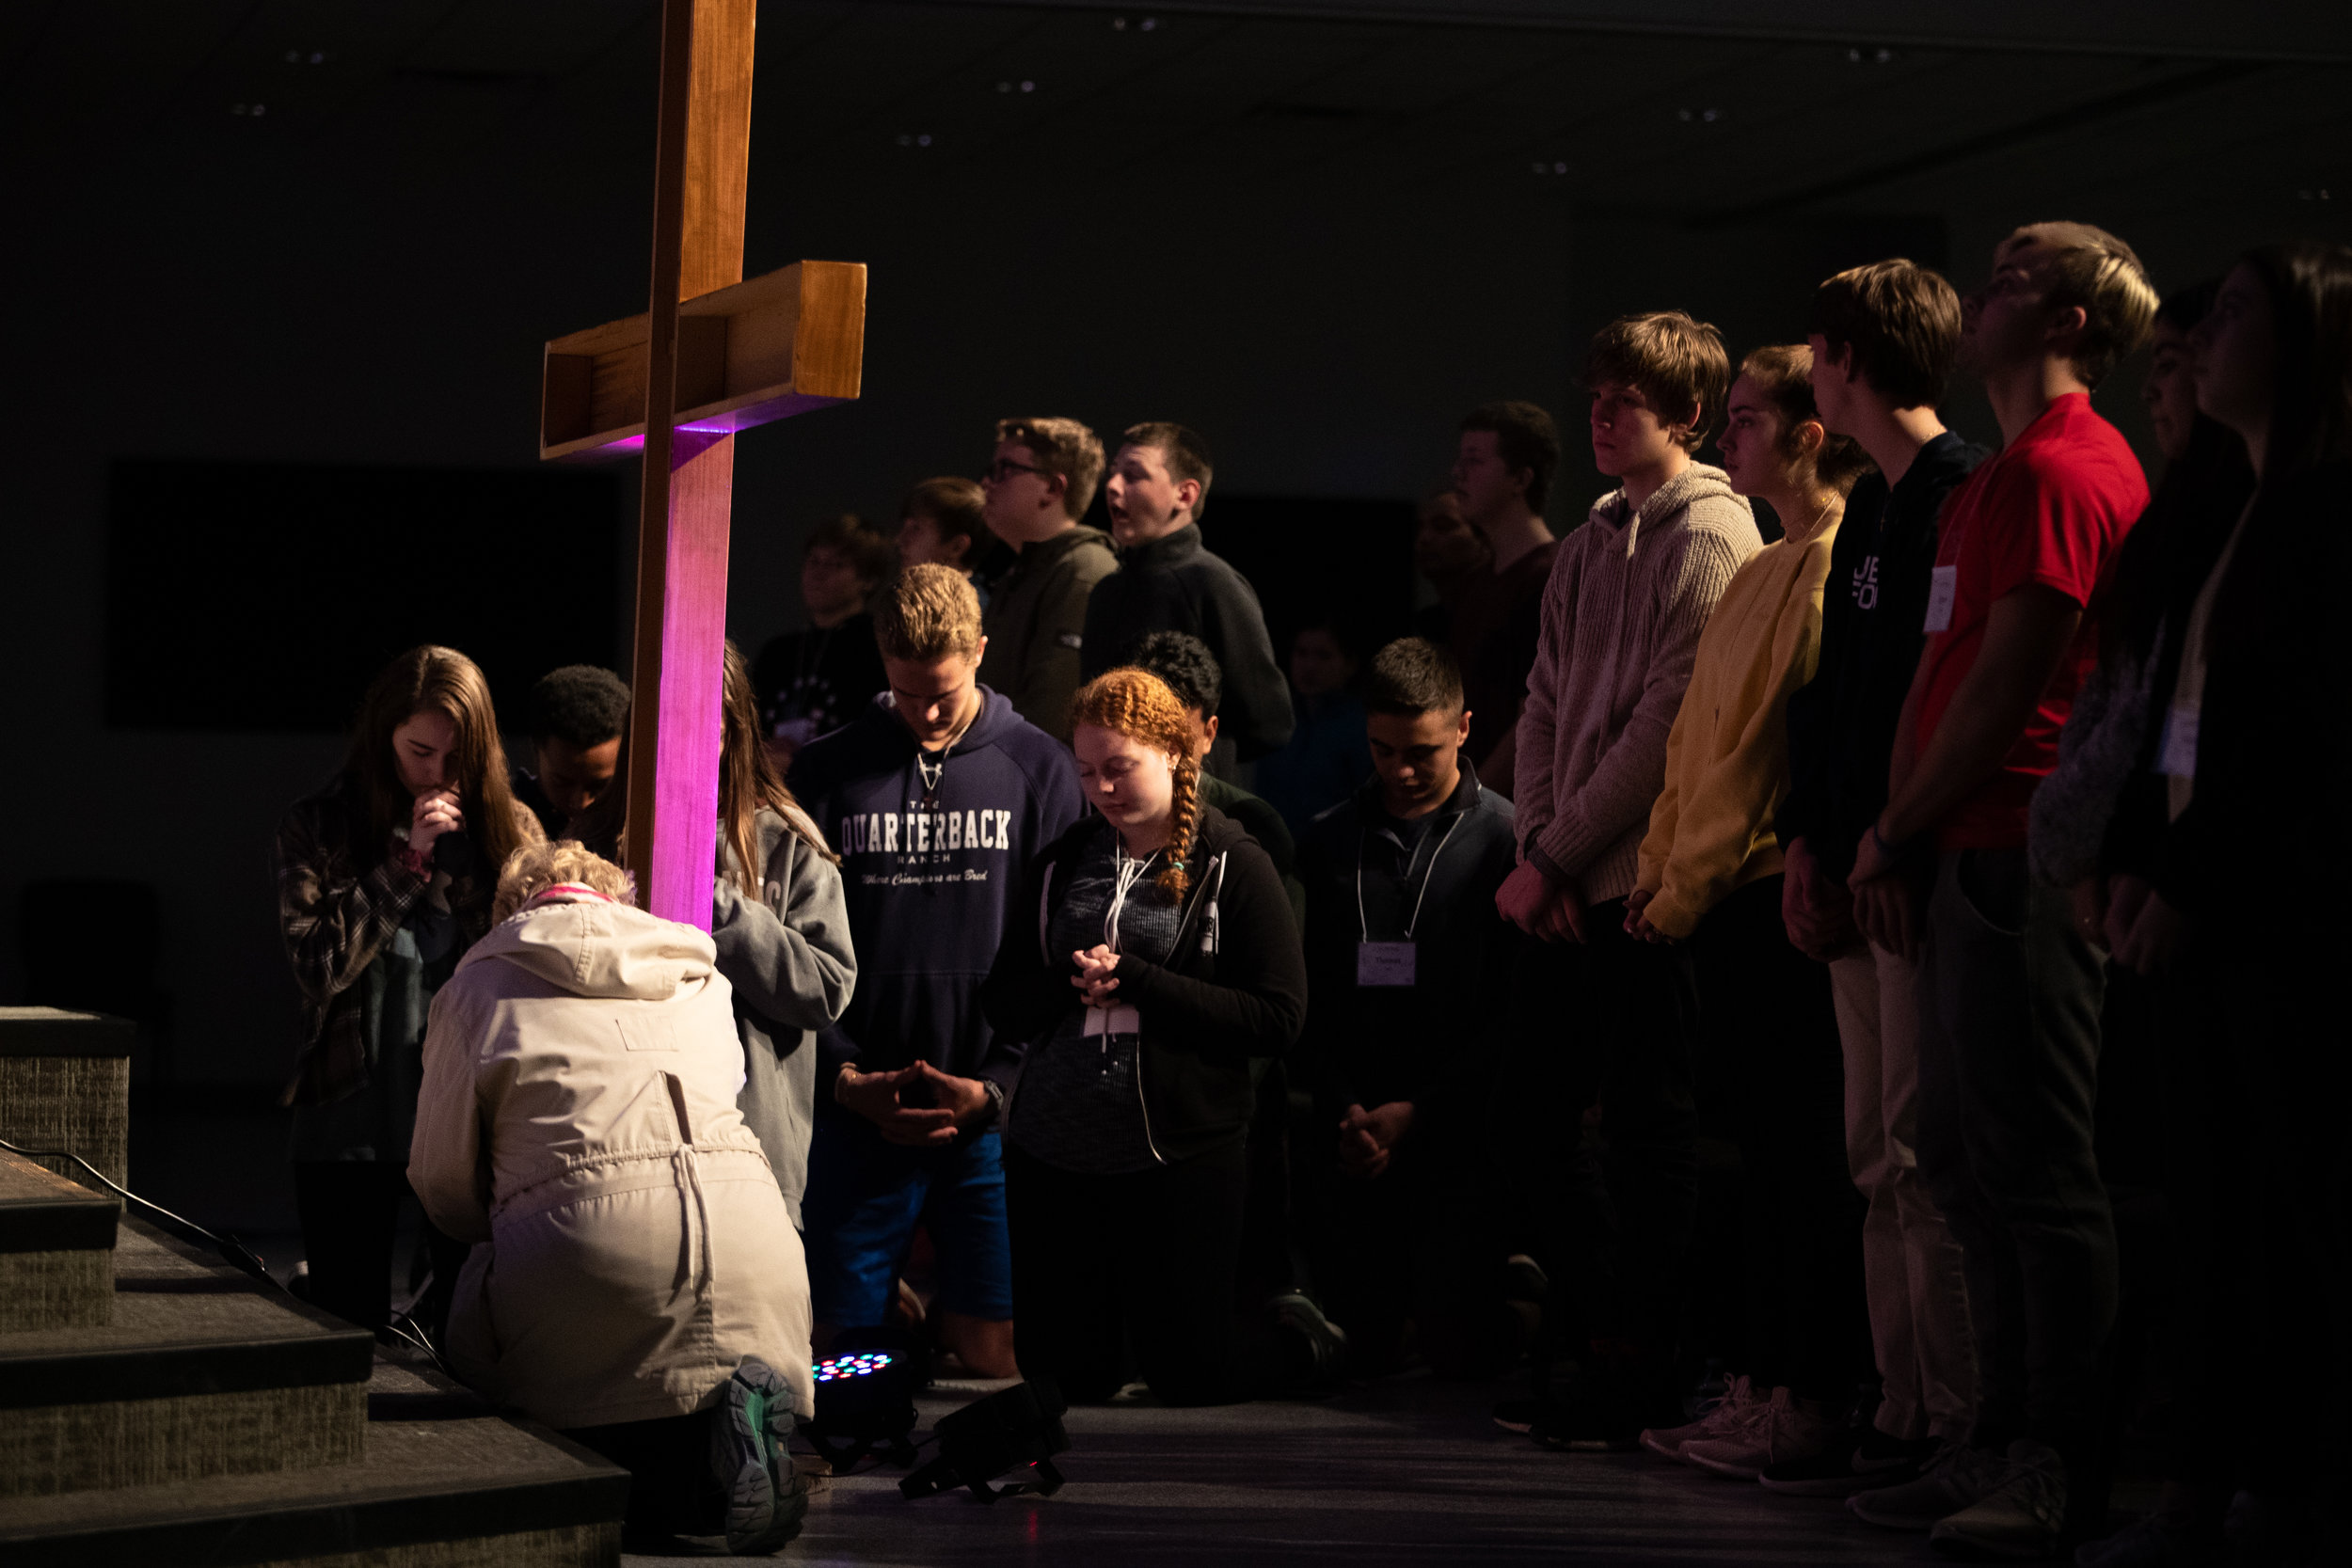 011219ConfirmationRetreat_JB-99.jpg